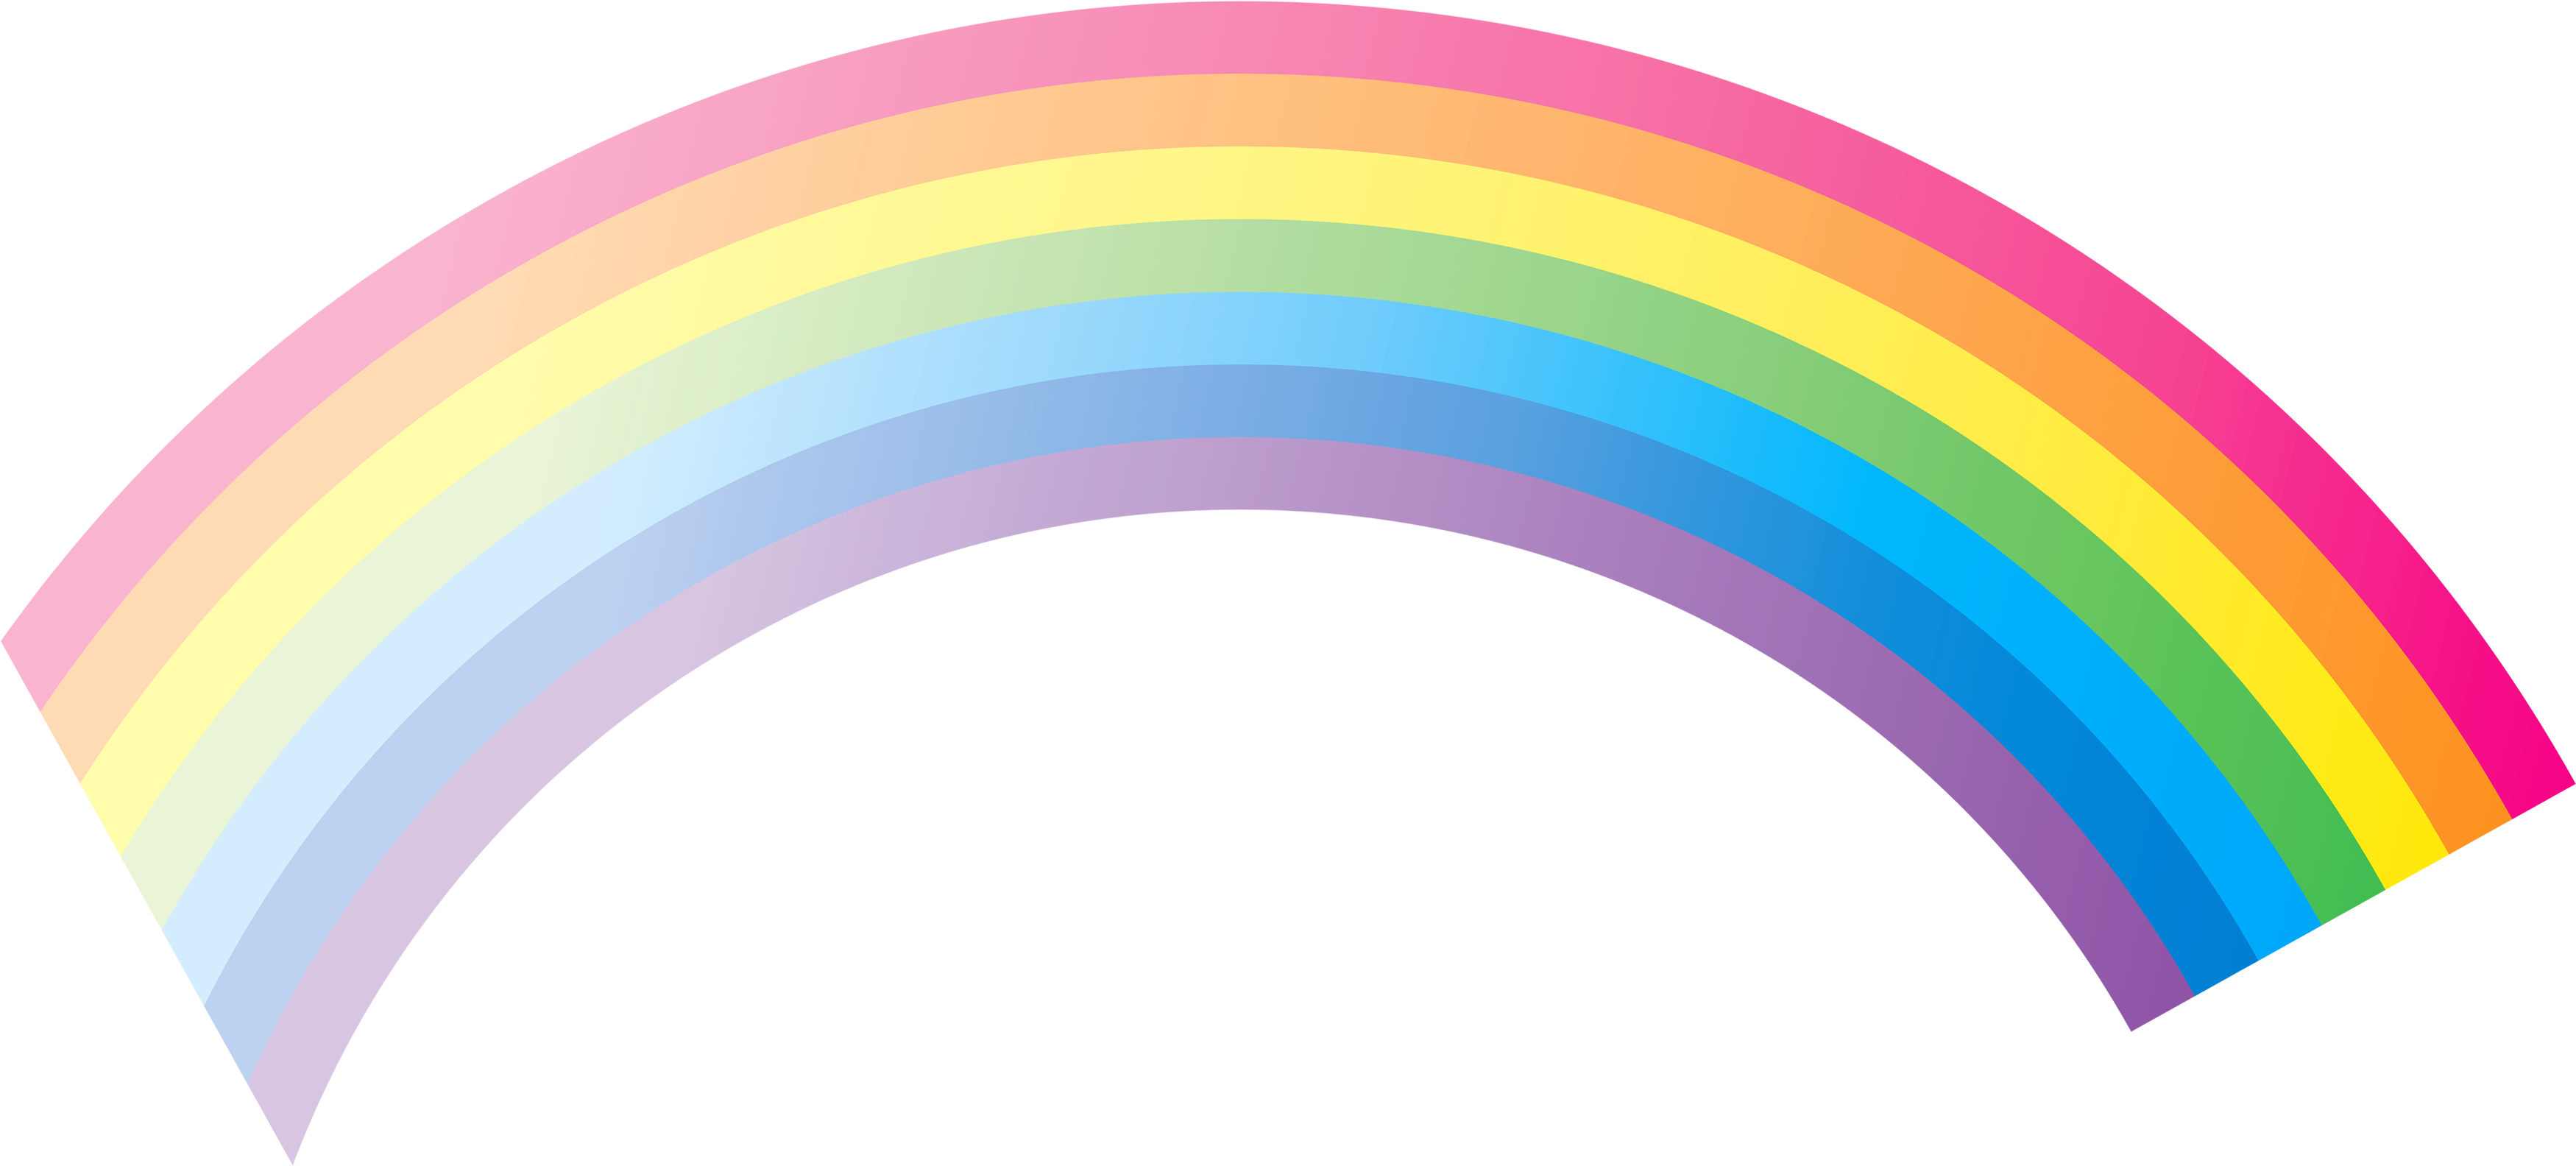 rainbow background png